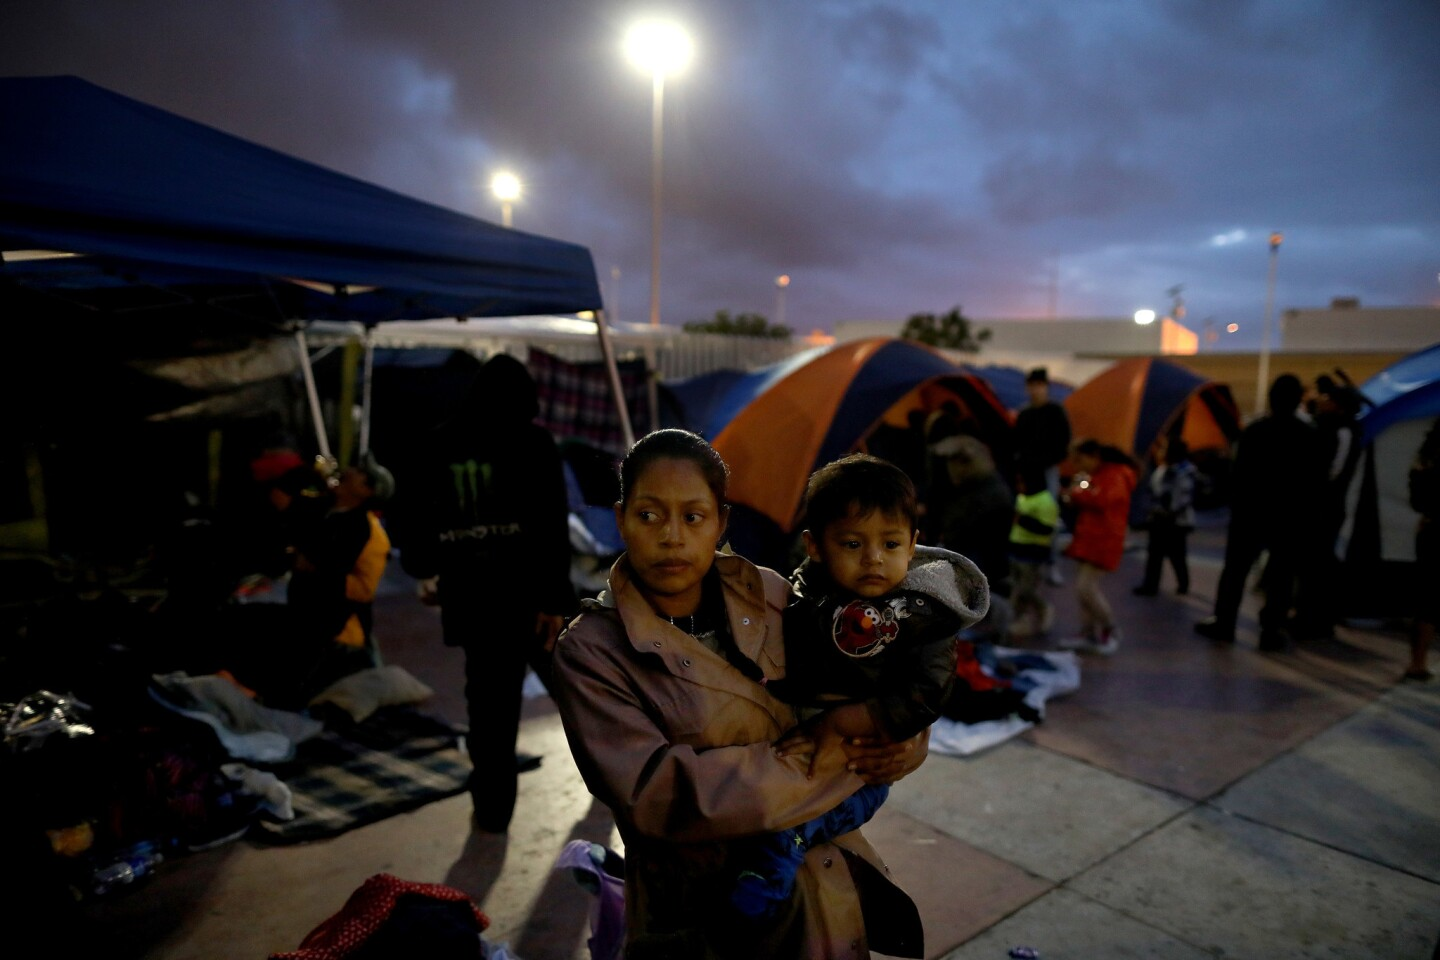 Night falls on a camp where nearly 200 Central American migrants seeking asylum in the U.S. gather on their third day near the El Chaparral port of entry in Tijuana.